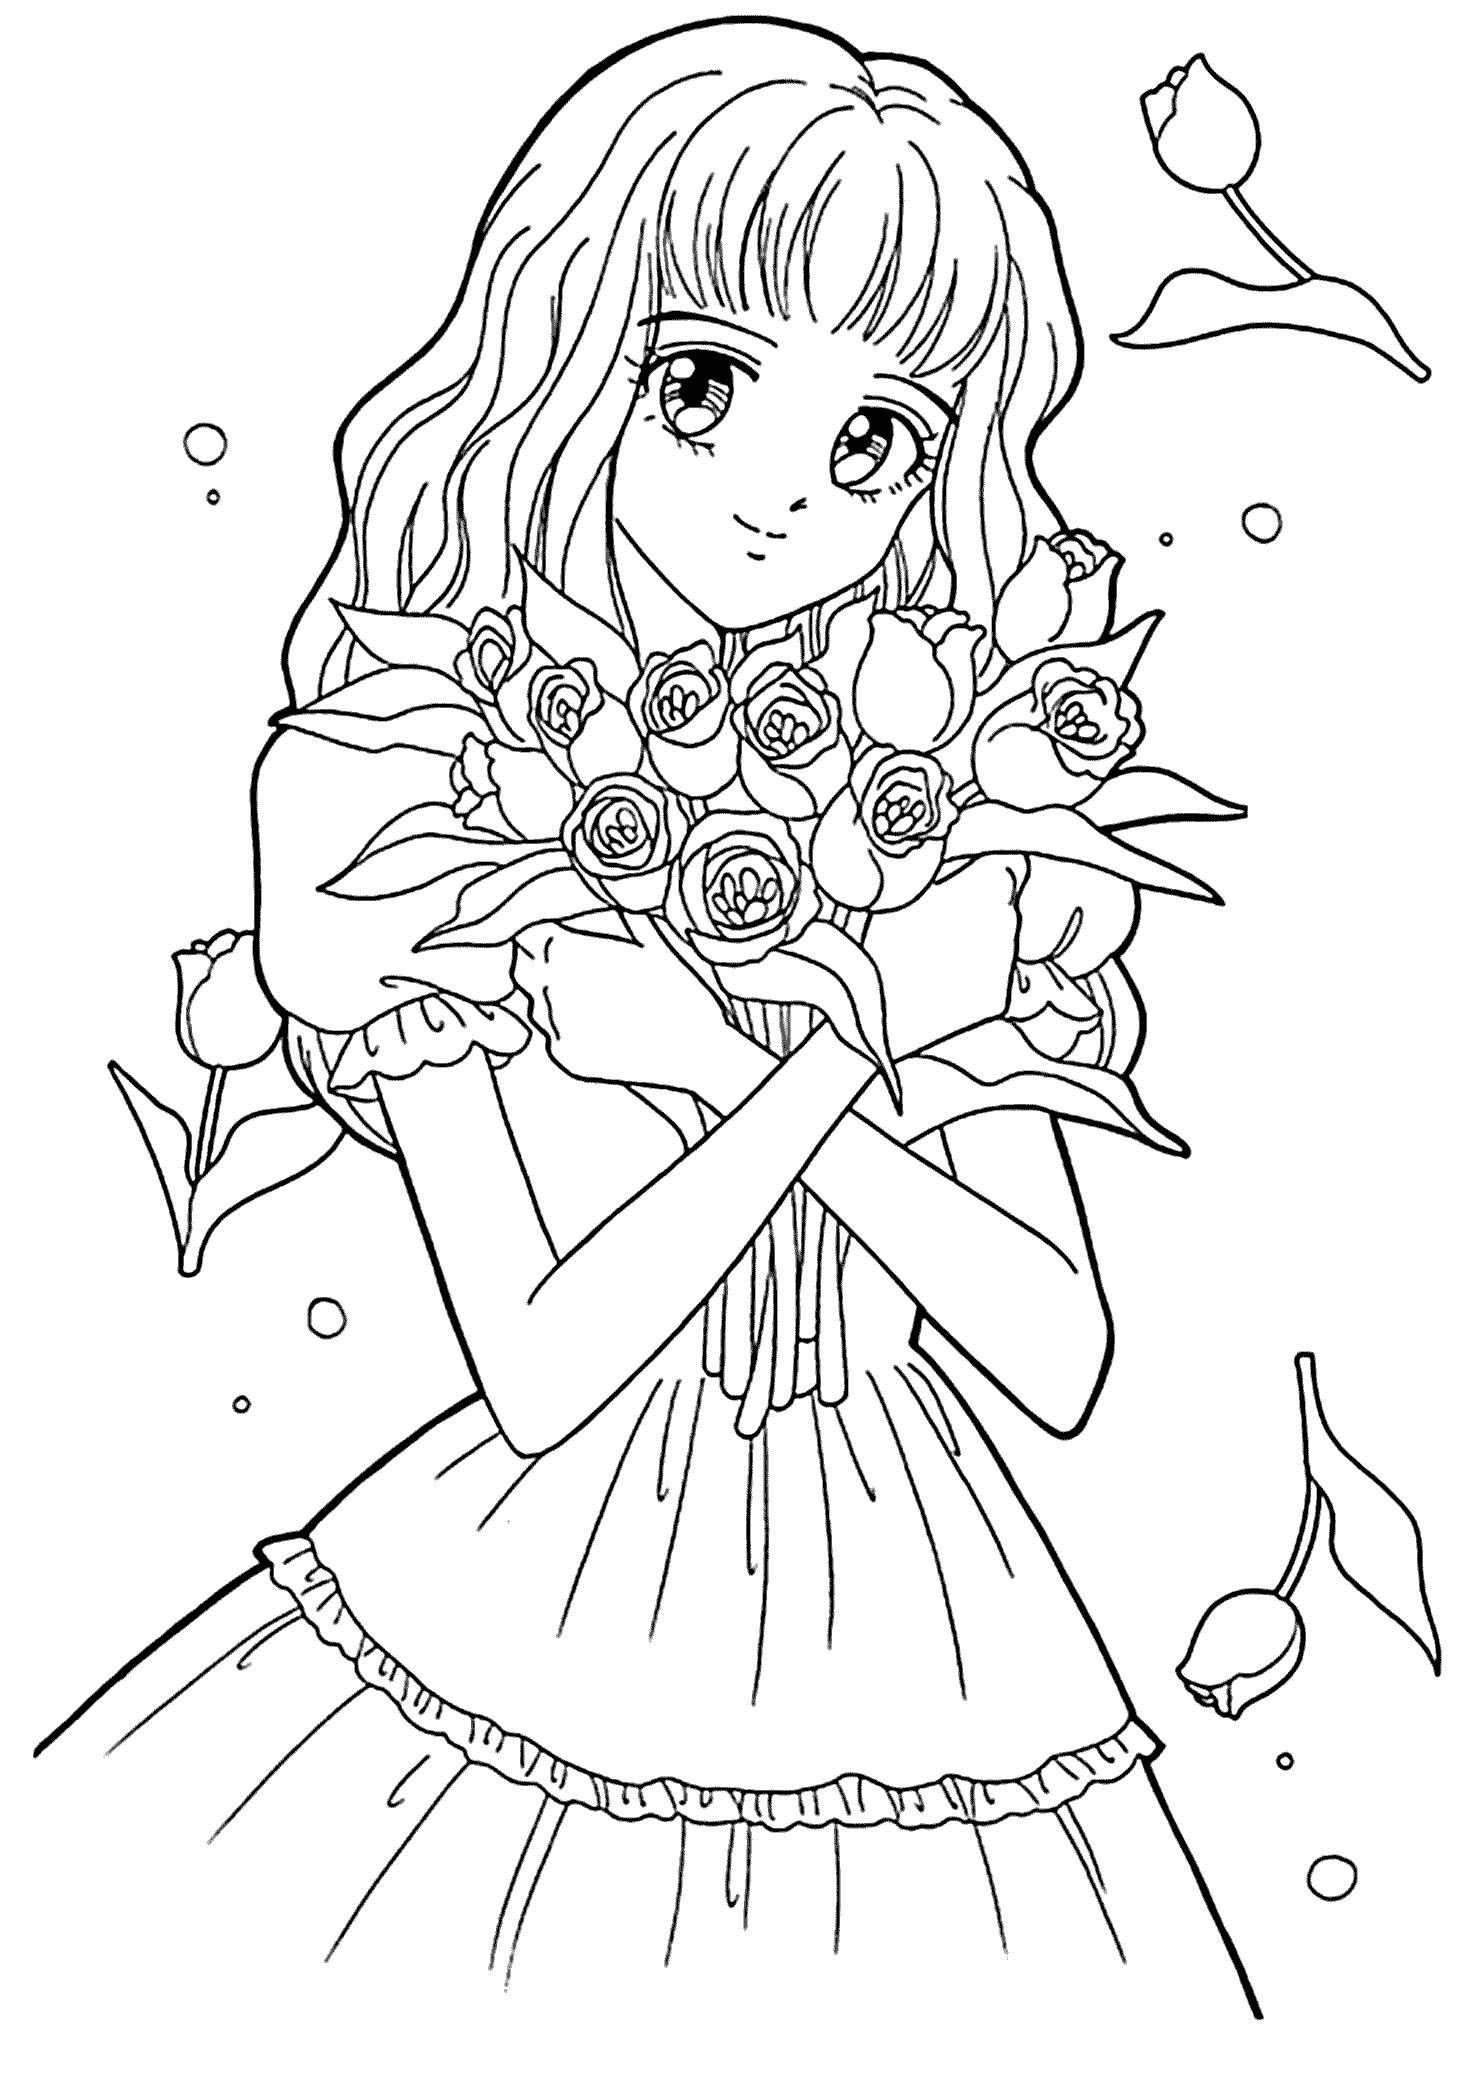 printable colouring pages for girls free printable lisa frank coloring pages for kids girls for printable pages colouring